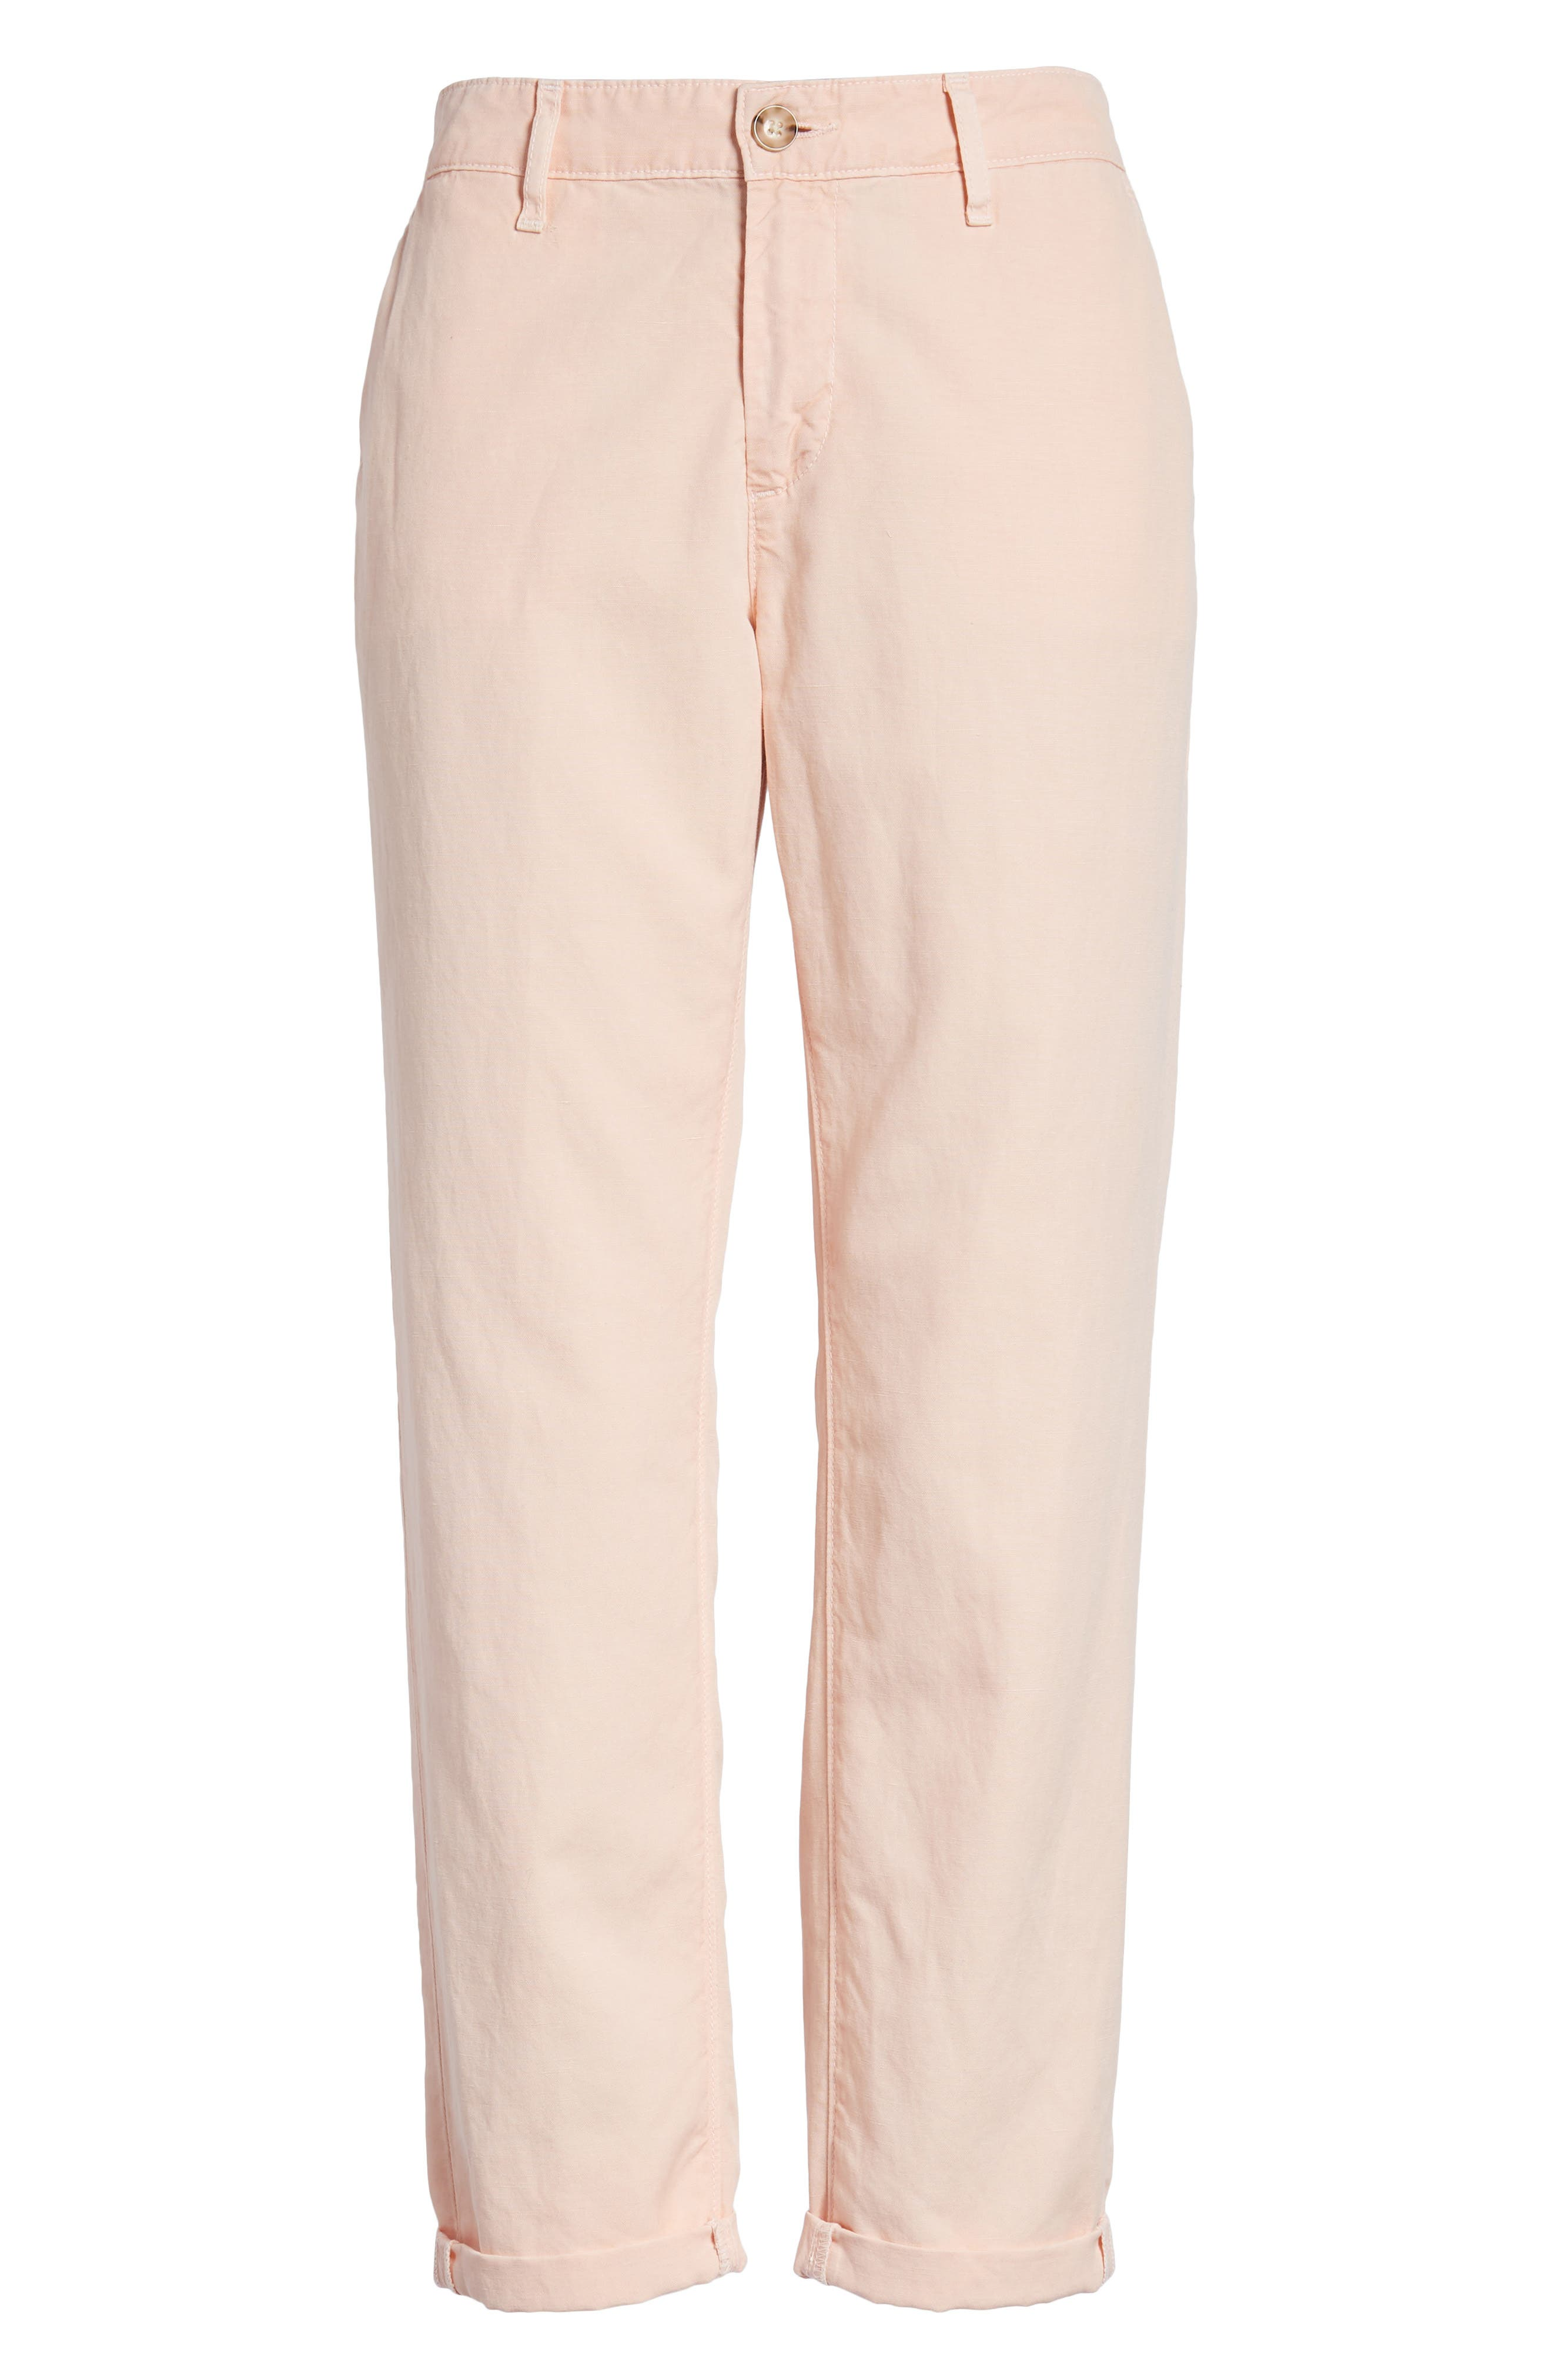 Caden Crop Twill Trousers,                             Alternate thumbnail 3, color,                             Sulfur Prism Pink